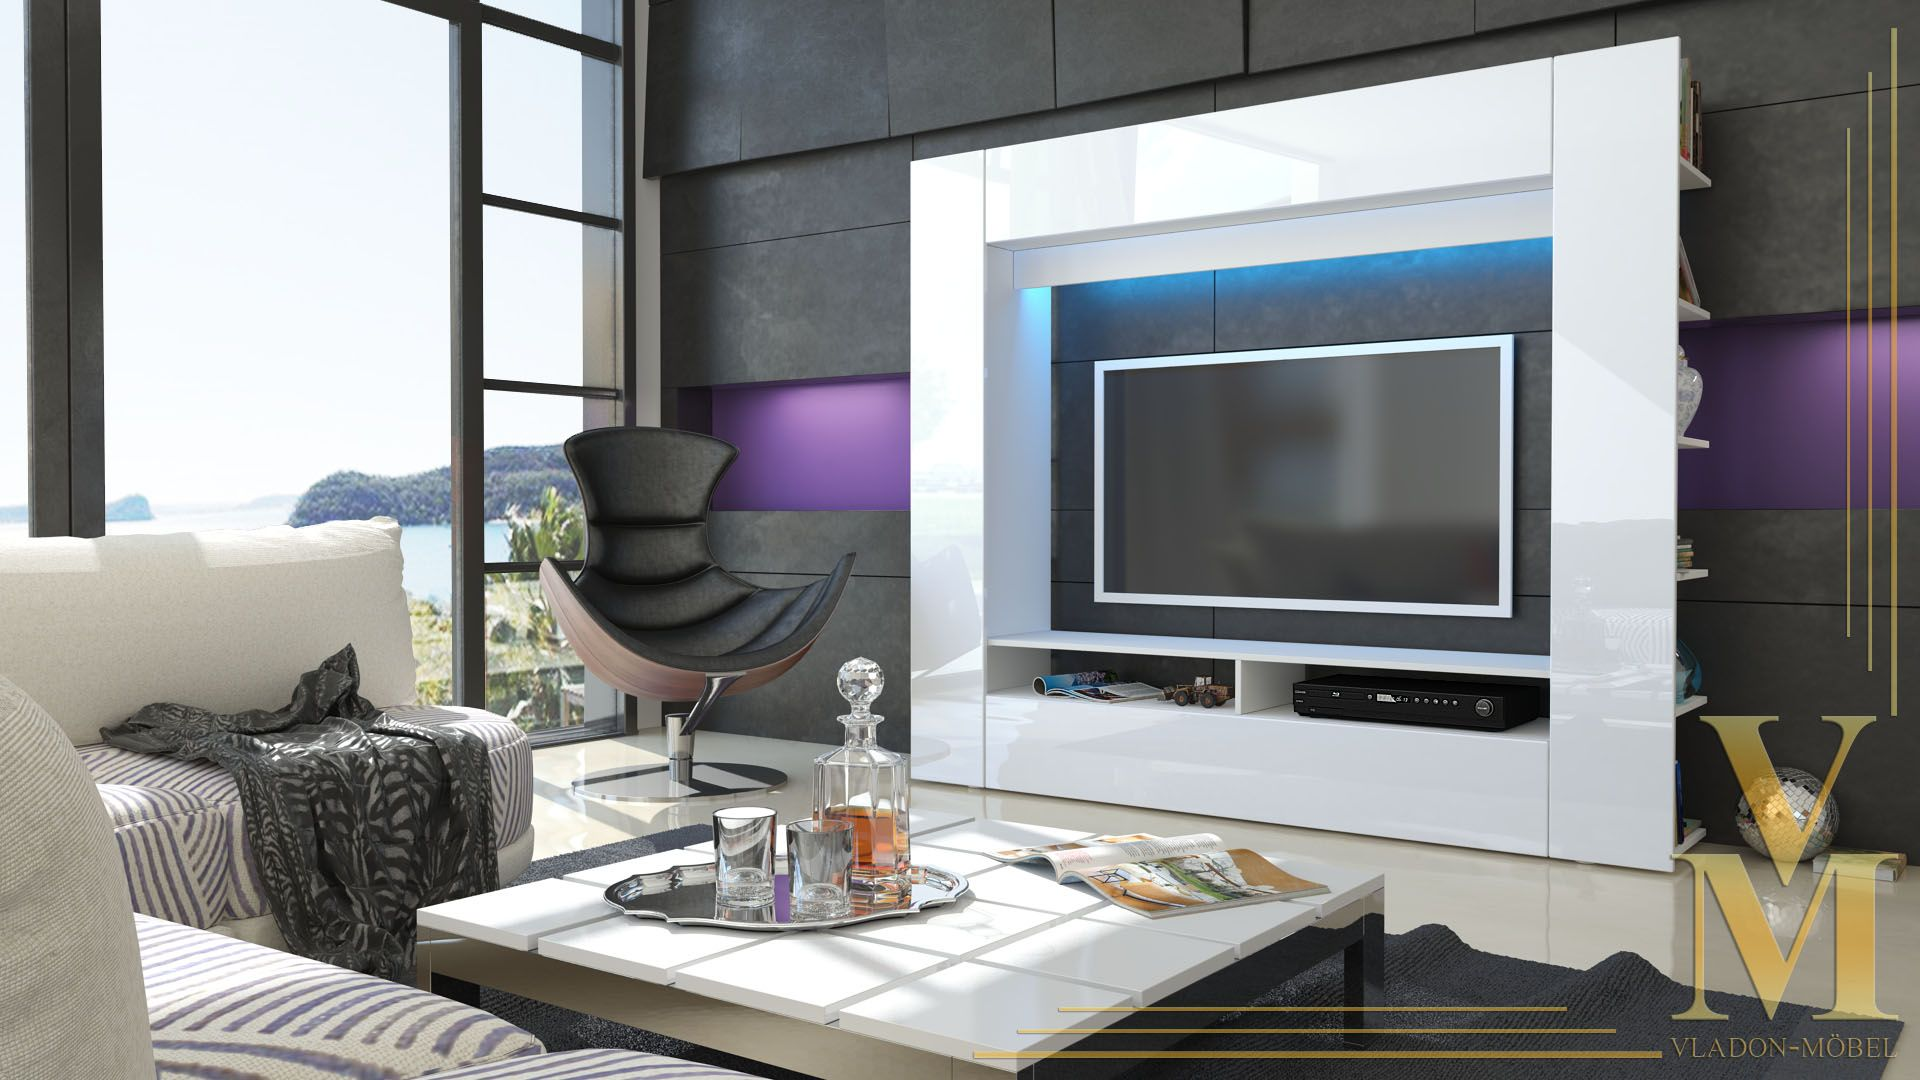 Details About Wall Unit Tv Stand Living Room Furniture Olli White High Gloss Natural Tones